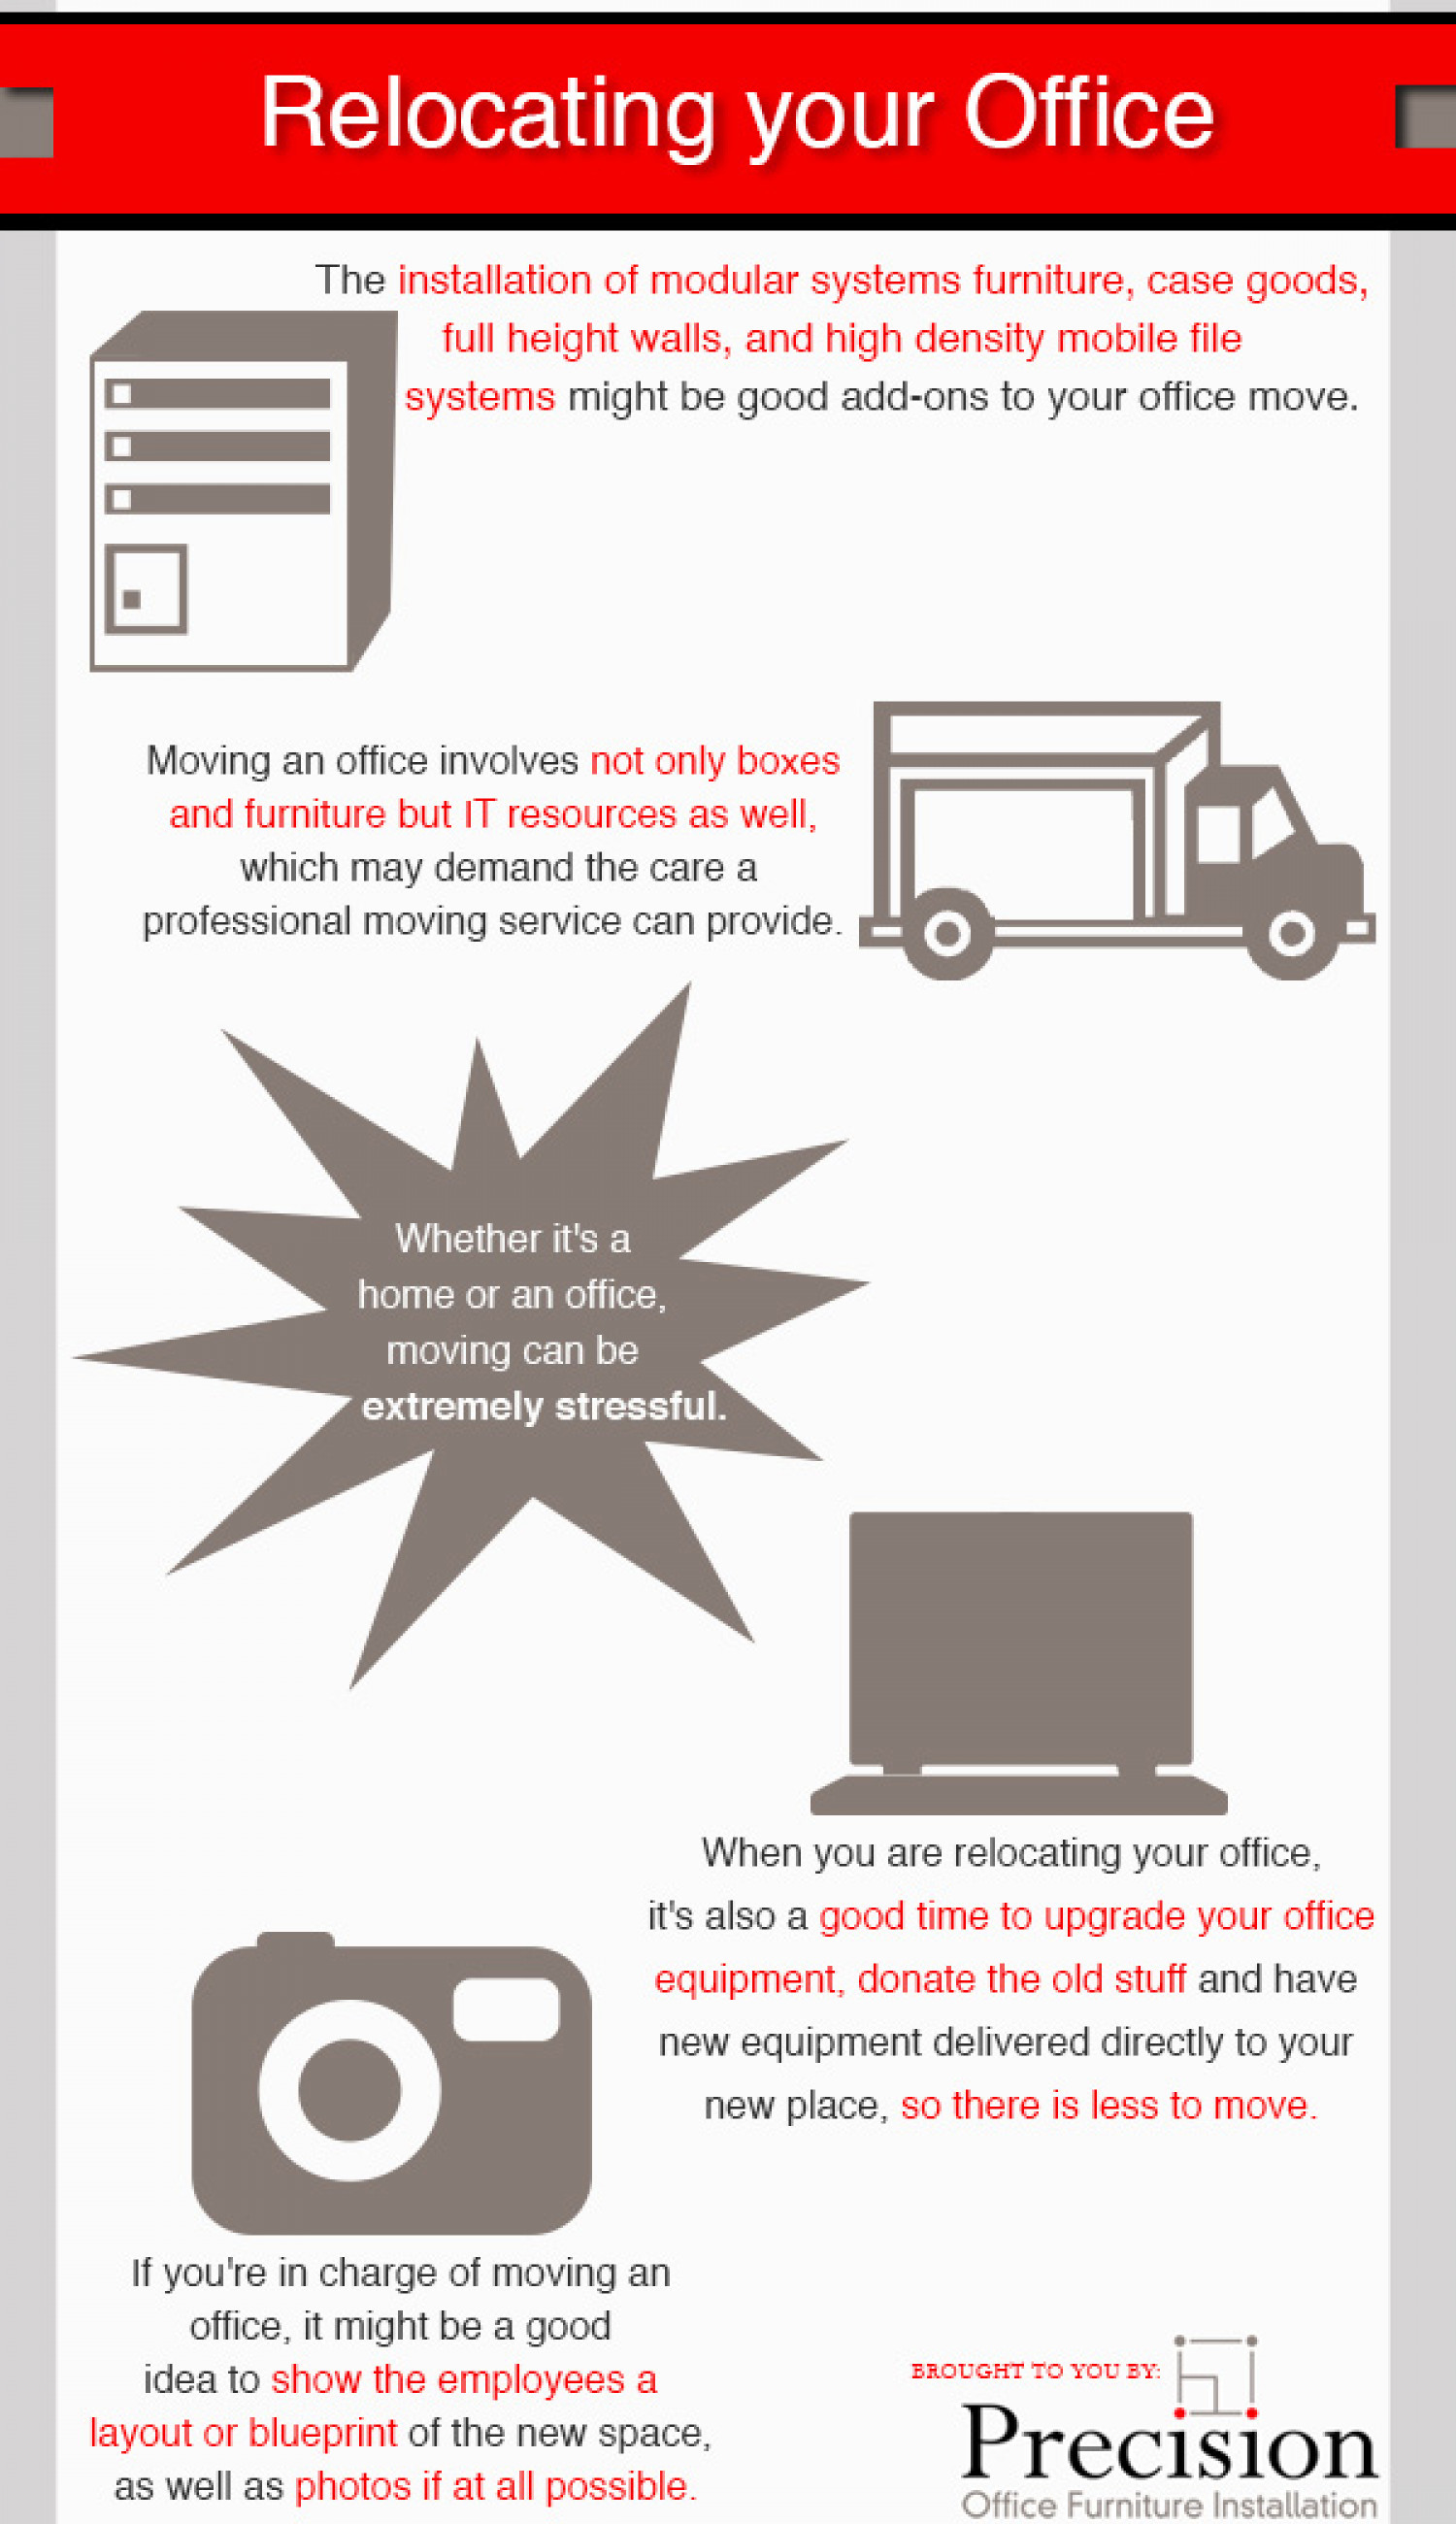 Relocating Your Office Infographic